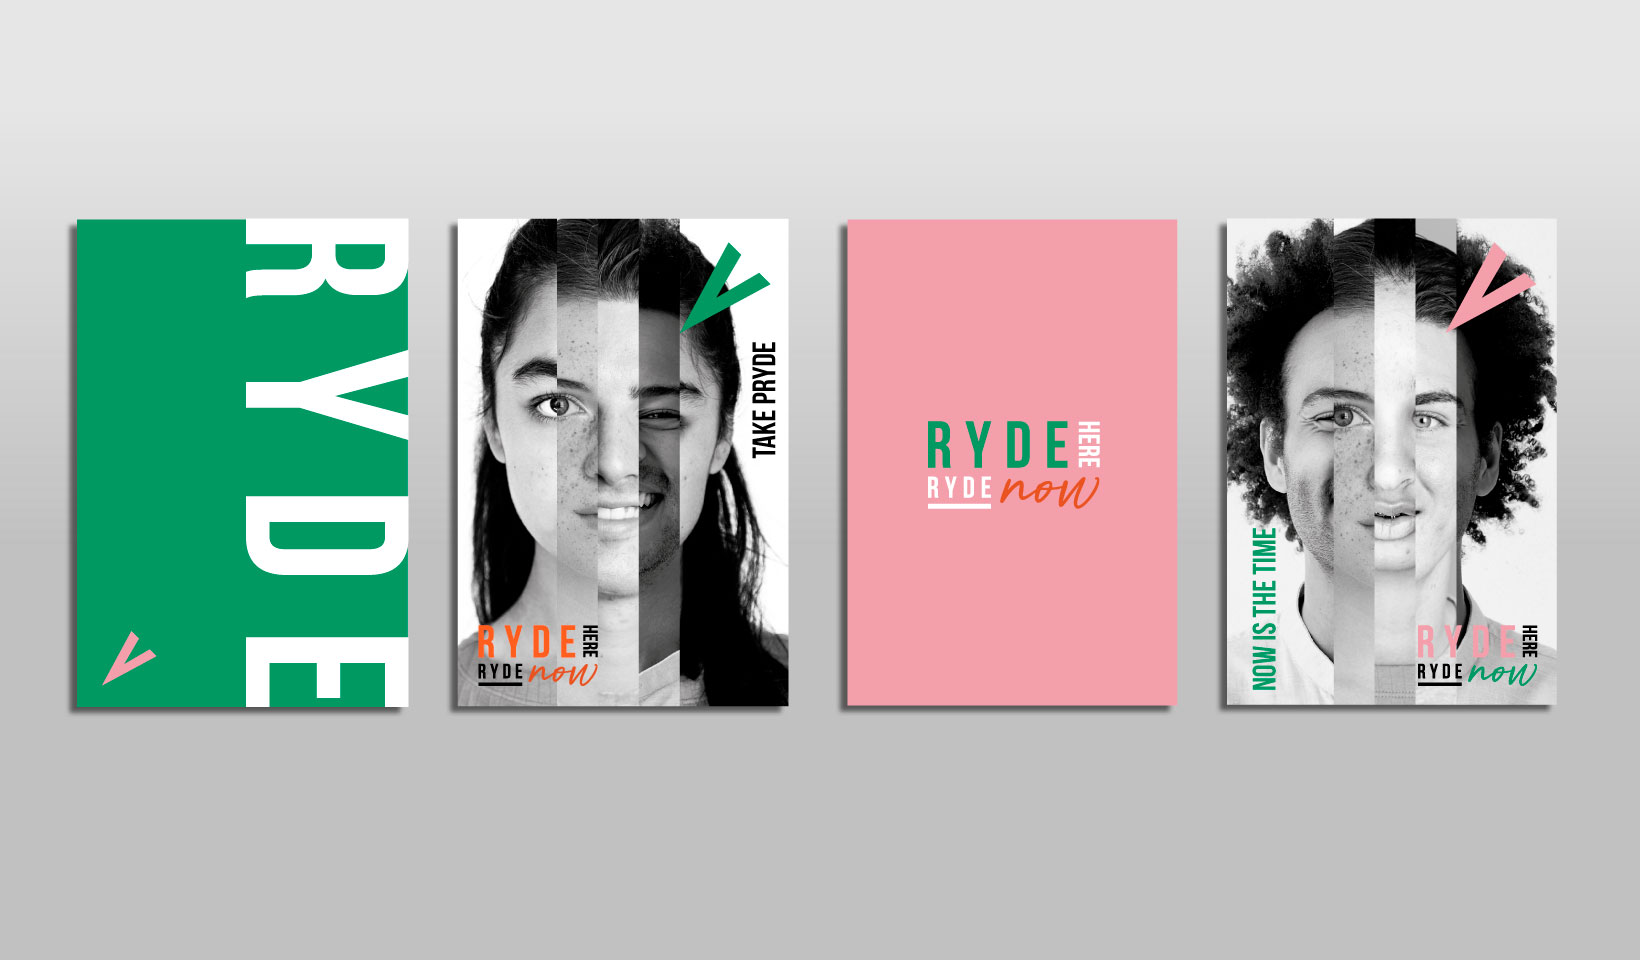 City of Ryde – 'Ryde here, Ryde now'